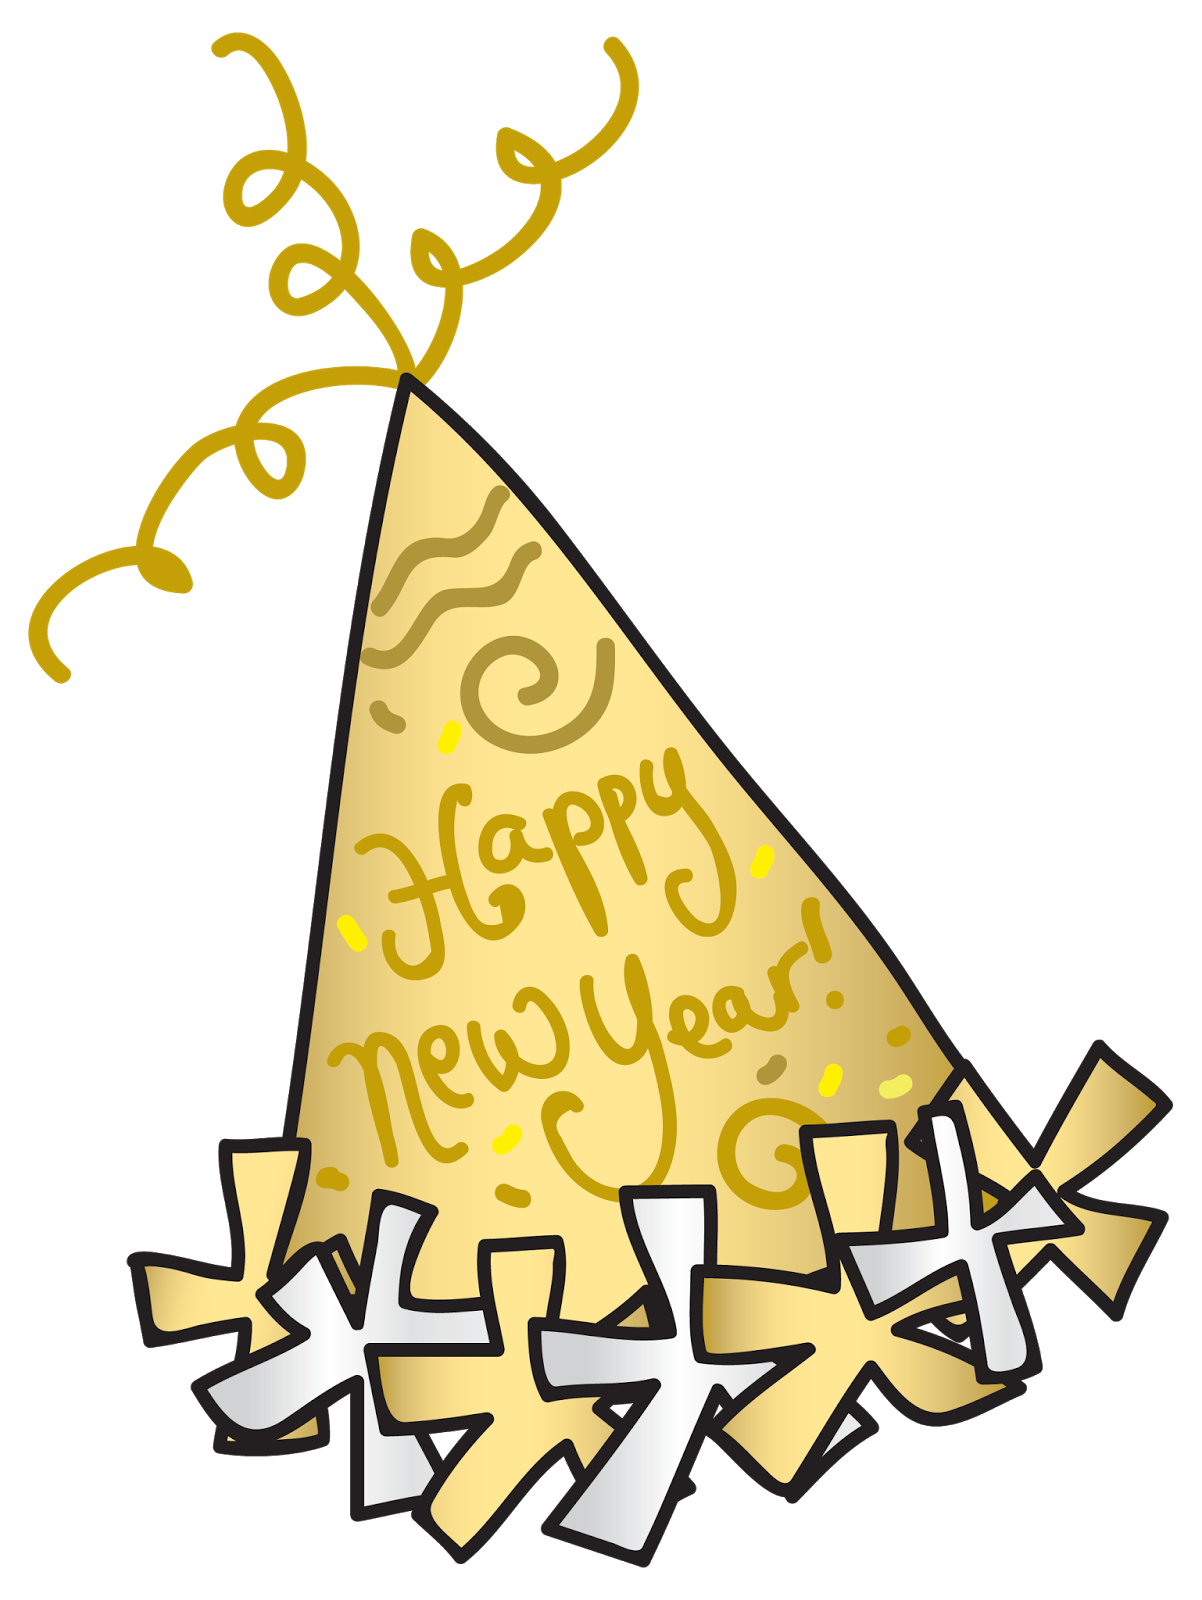 Wonderdigi sandra jones illustration. Clipart hat new year's